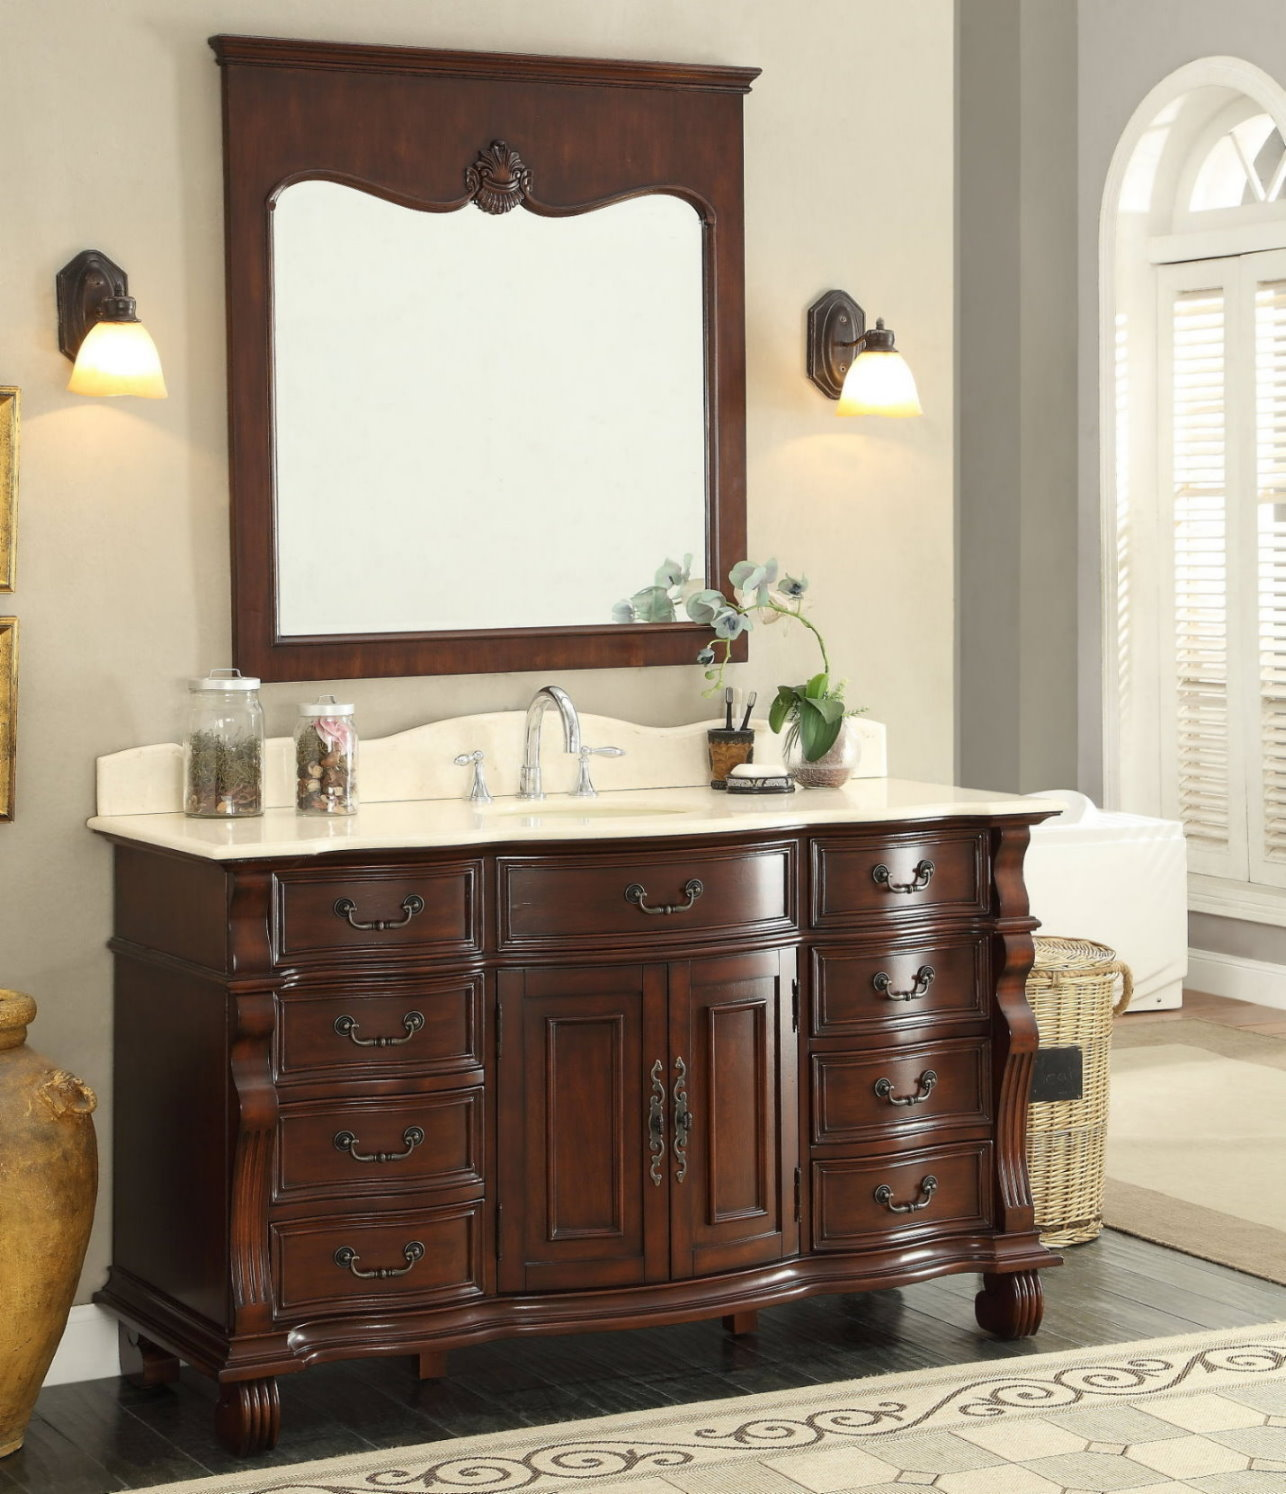 ... 60 inch Antique Style Bathroom Vanity Cream Marble Top ... - Adelina 60 Inch Antique Style Bathroom Vanity, Cream Marble